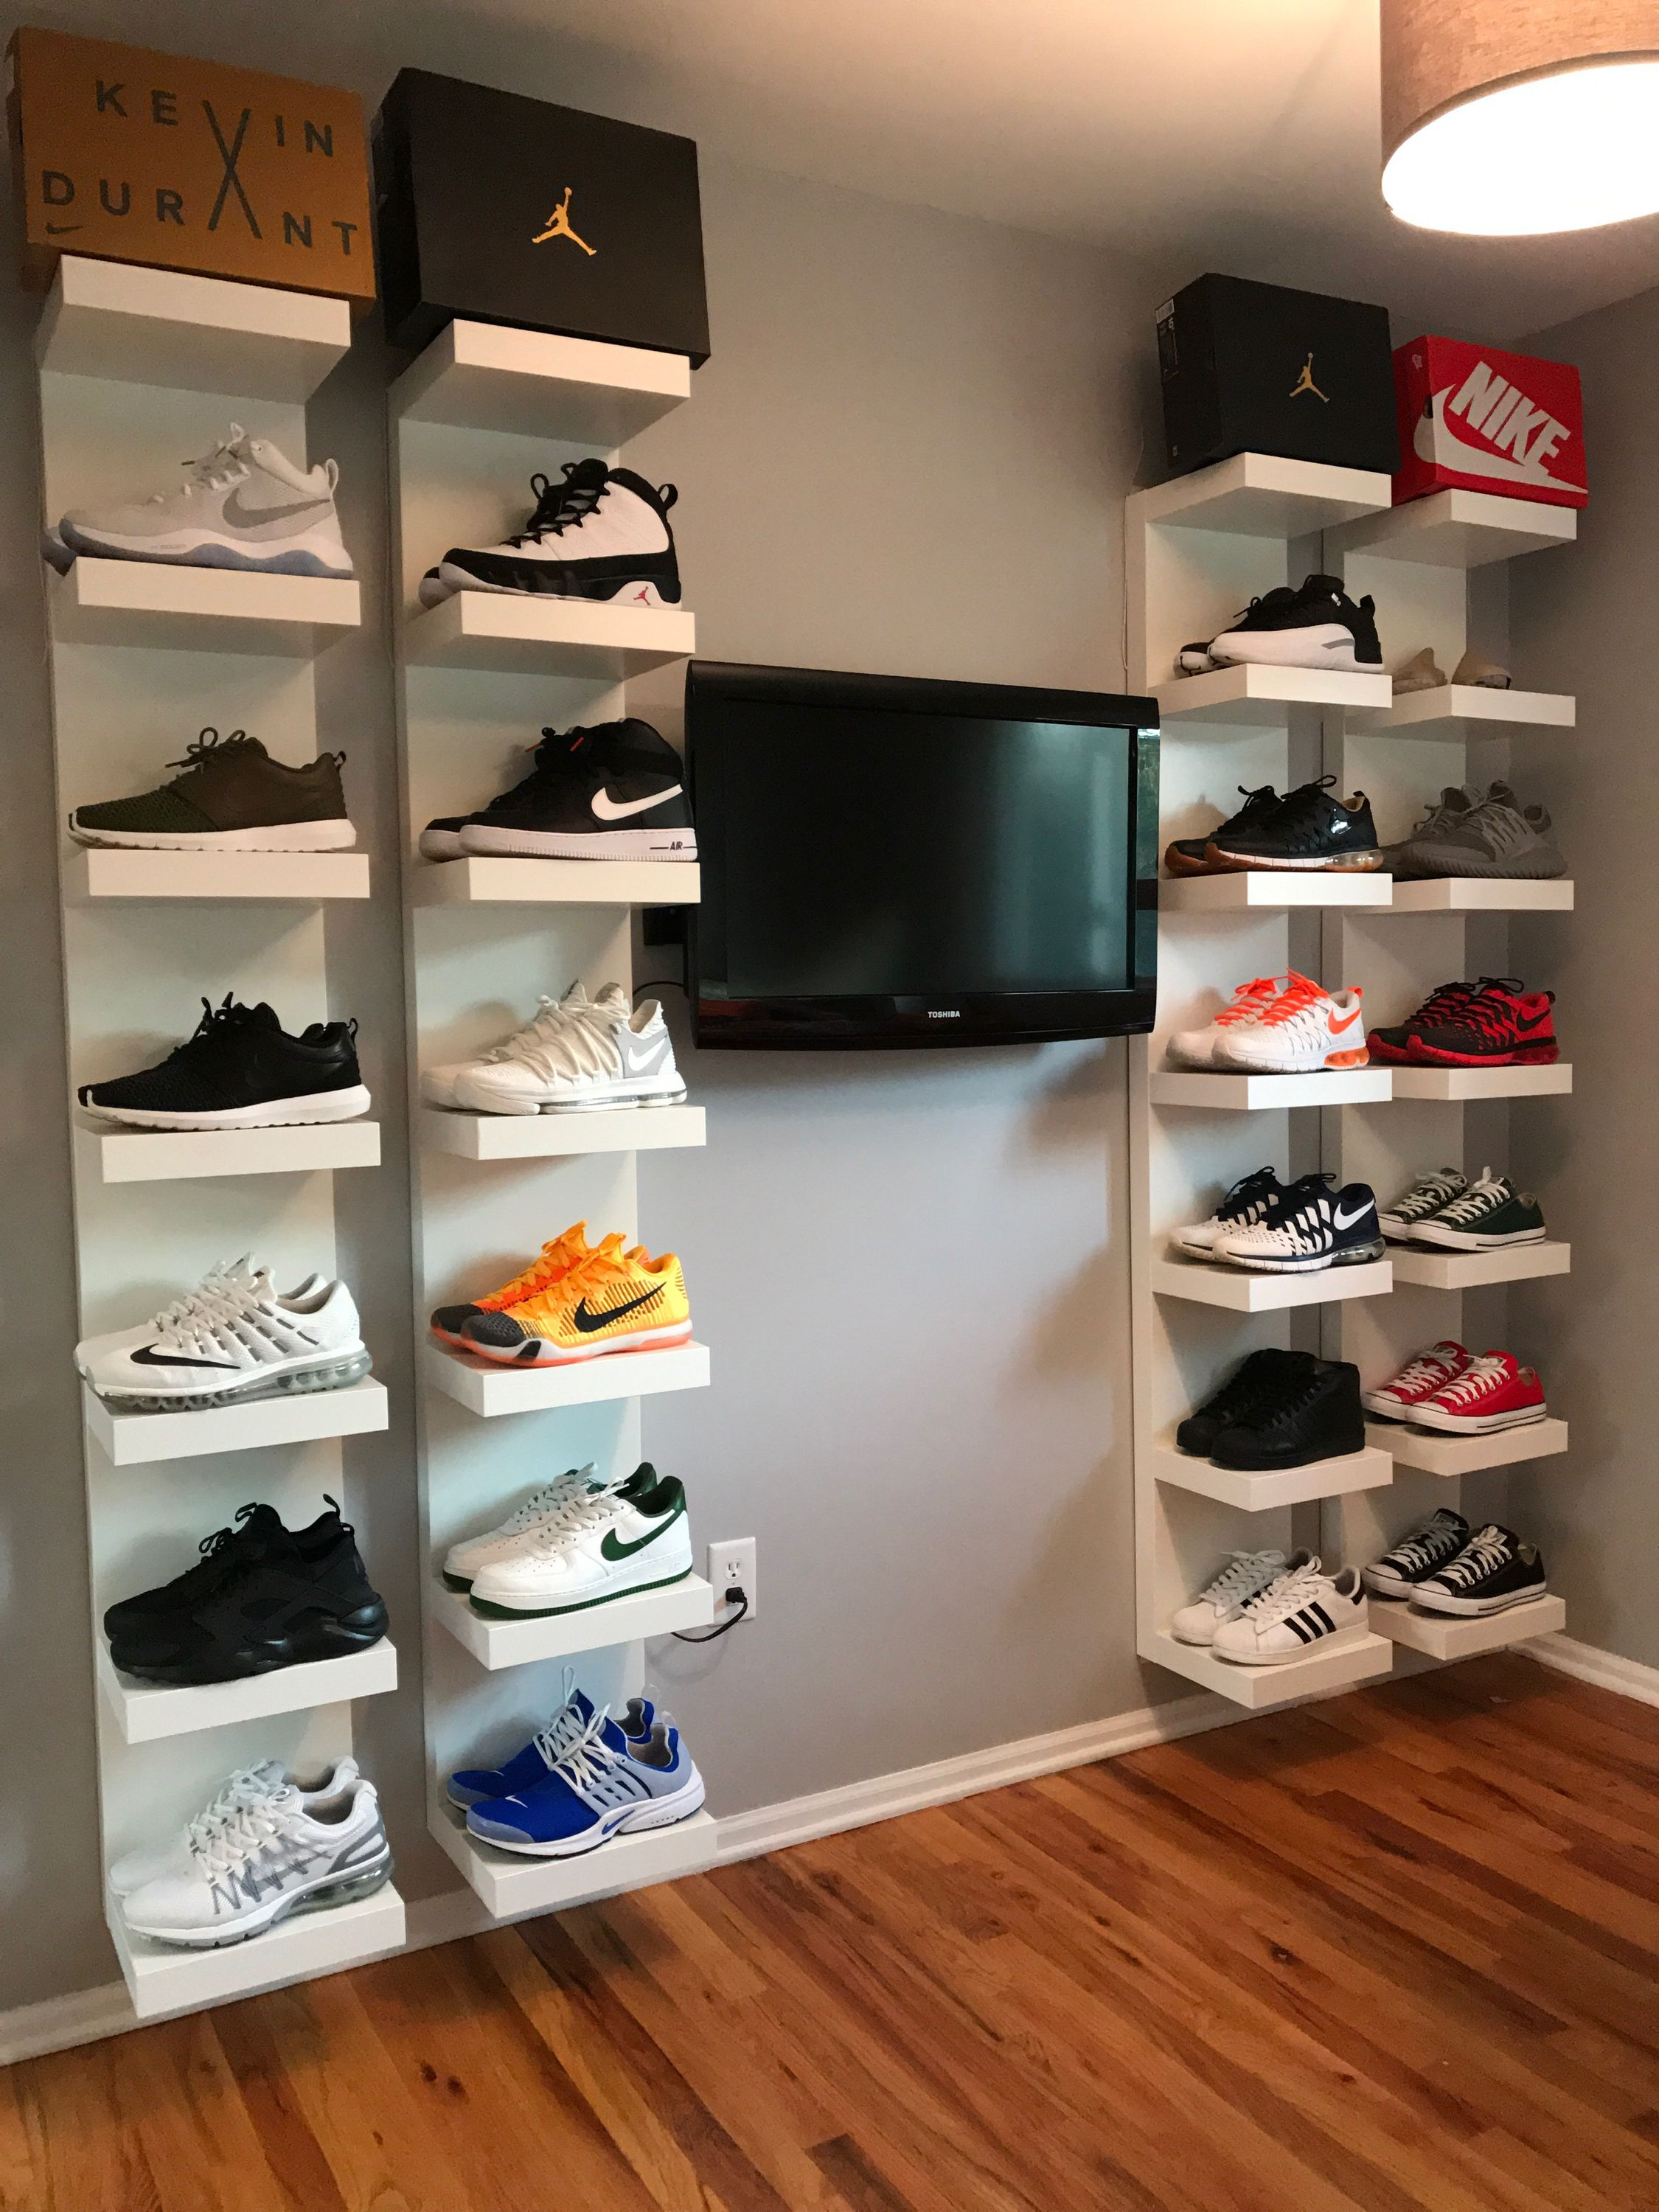 Diy Shoe Display Using Ikea Lack Shelves Sneakerhead Room Ikea